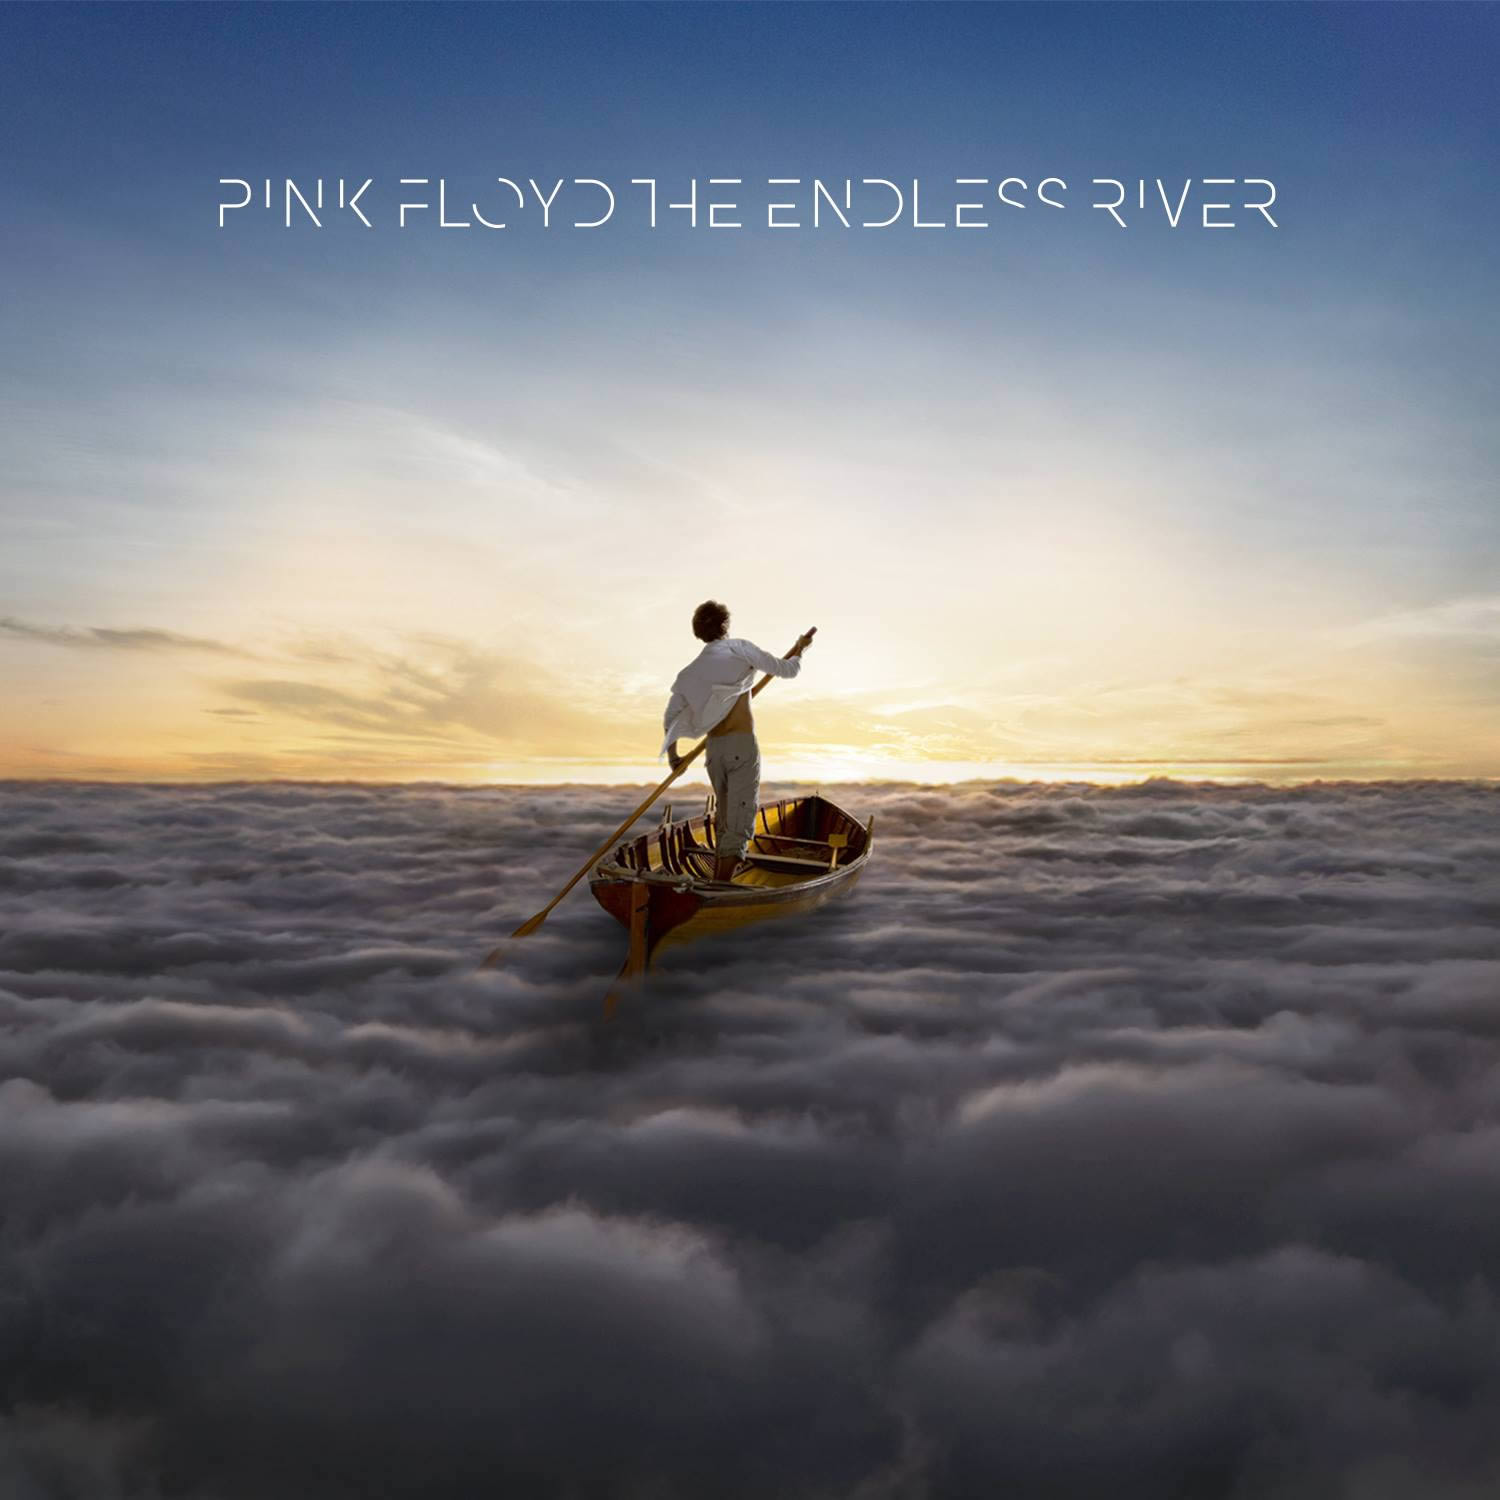 pink floyd's endless river album cover